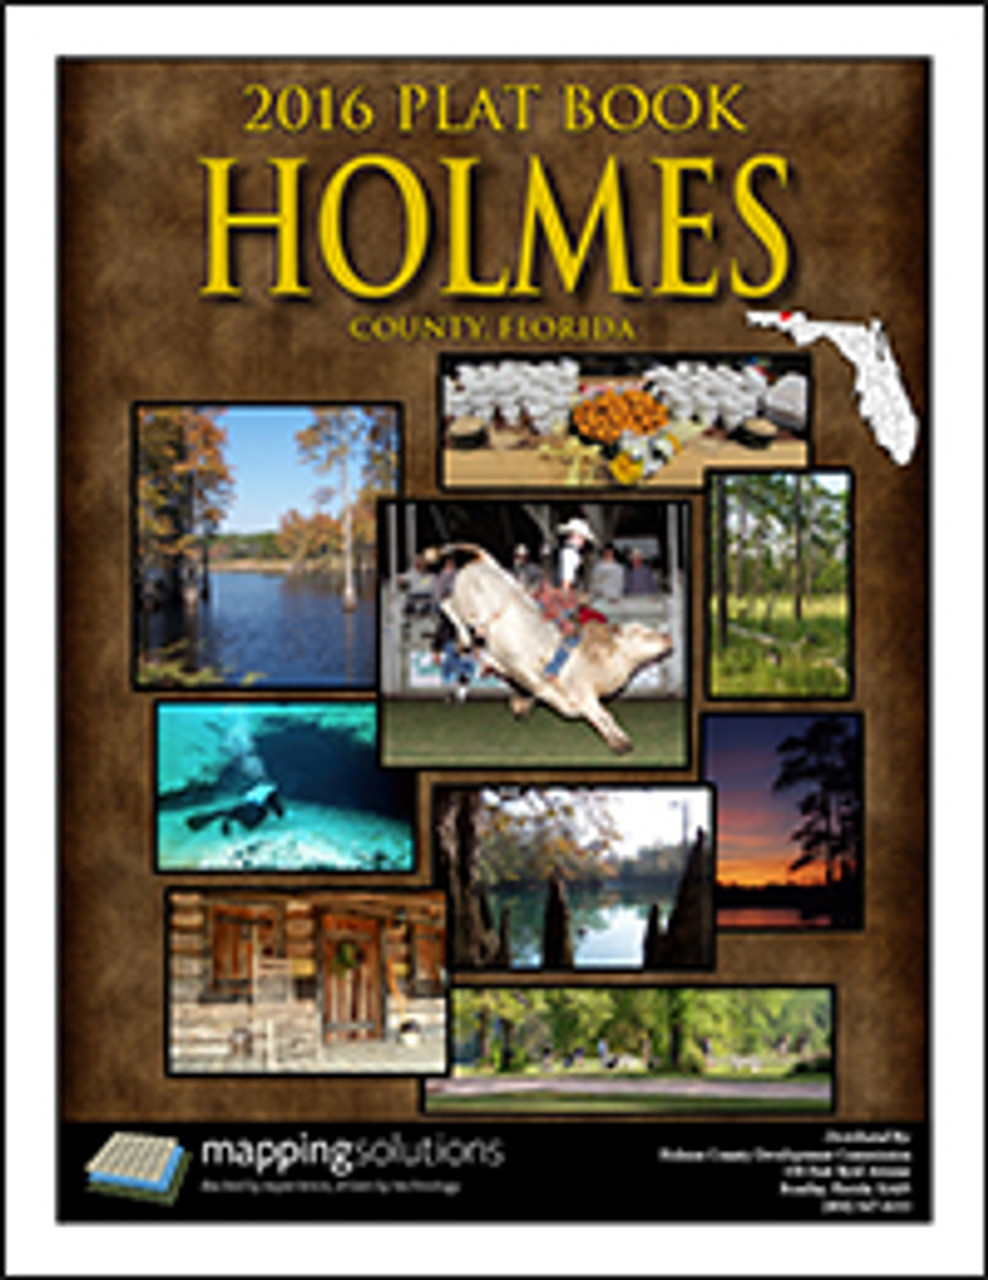 Florida Plat Maps.Holmes County Florida Plat Book 2016 Holmes County Parcel Map 2016